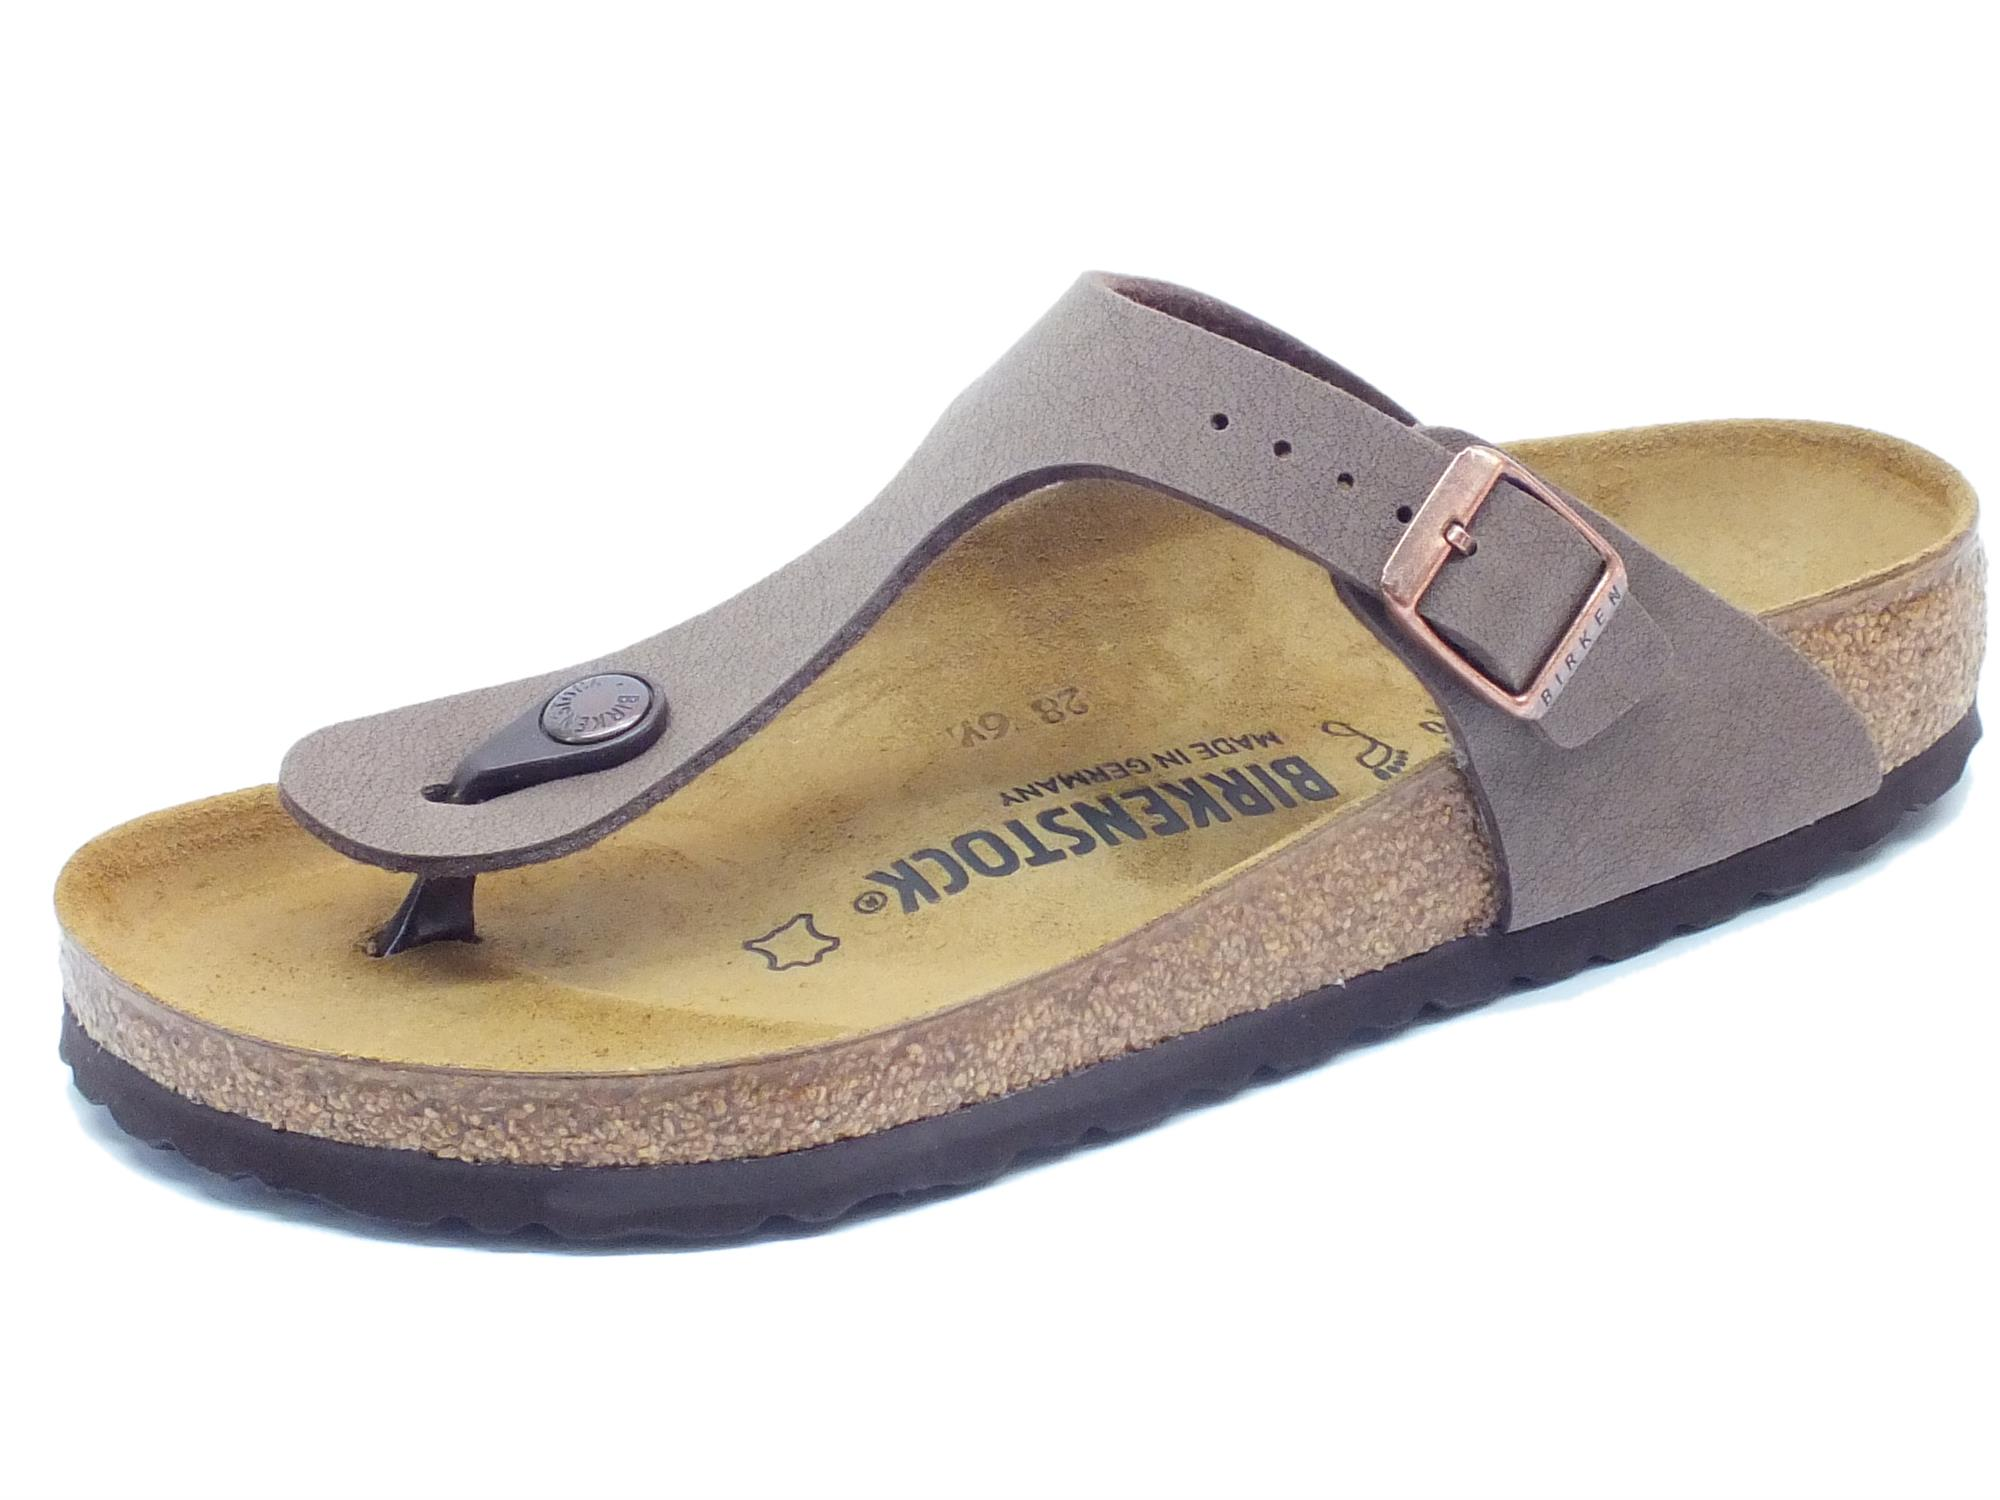 detailed look c9f20 0ecd1 Infradito Birkenstock per donna Gizeh BS colore mocca